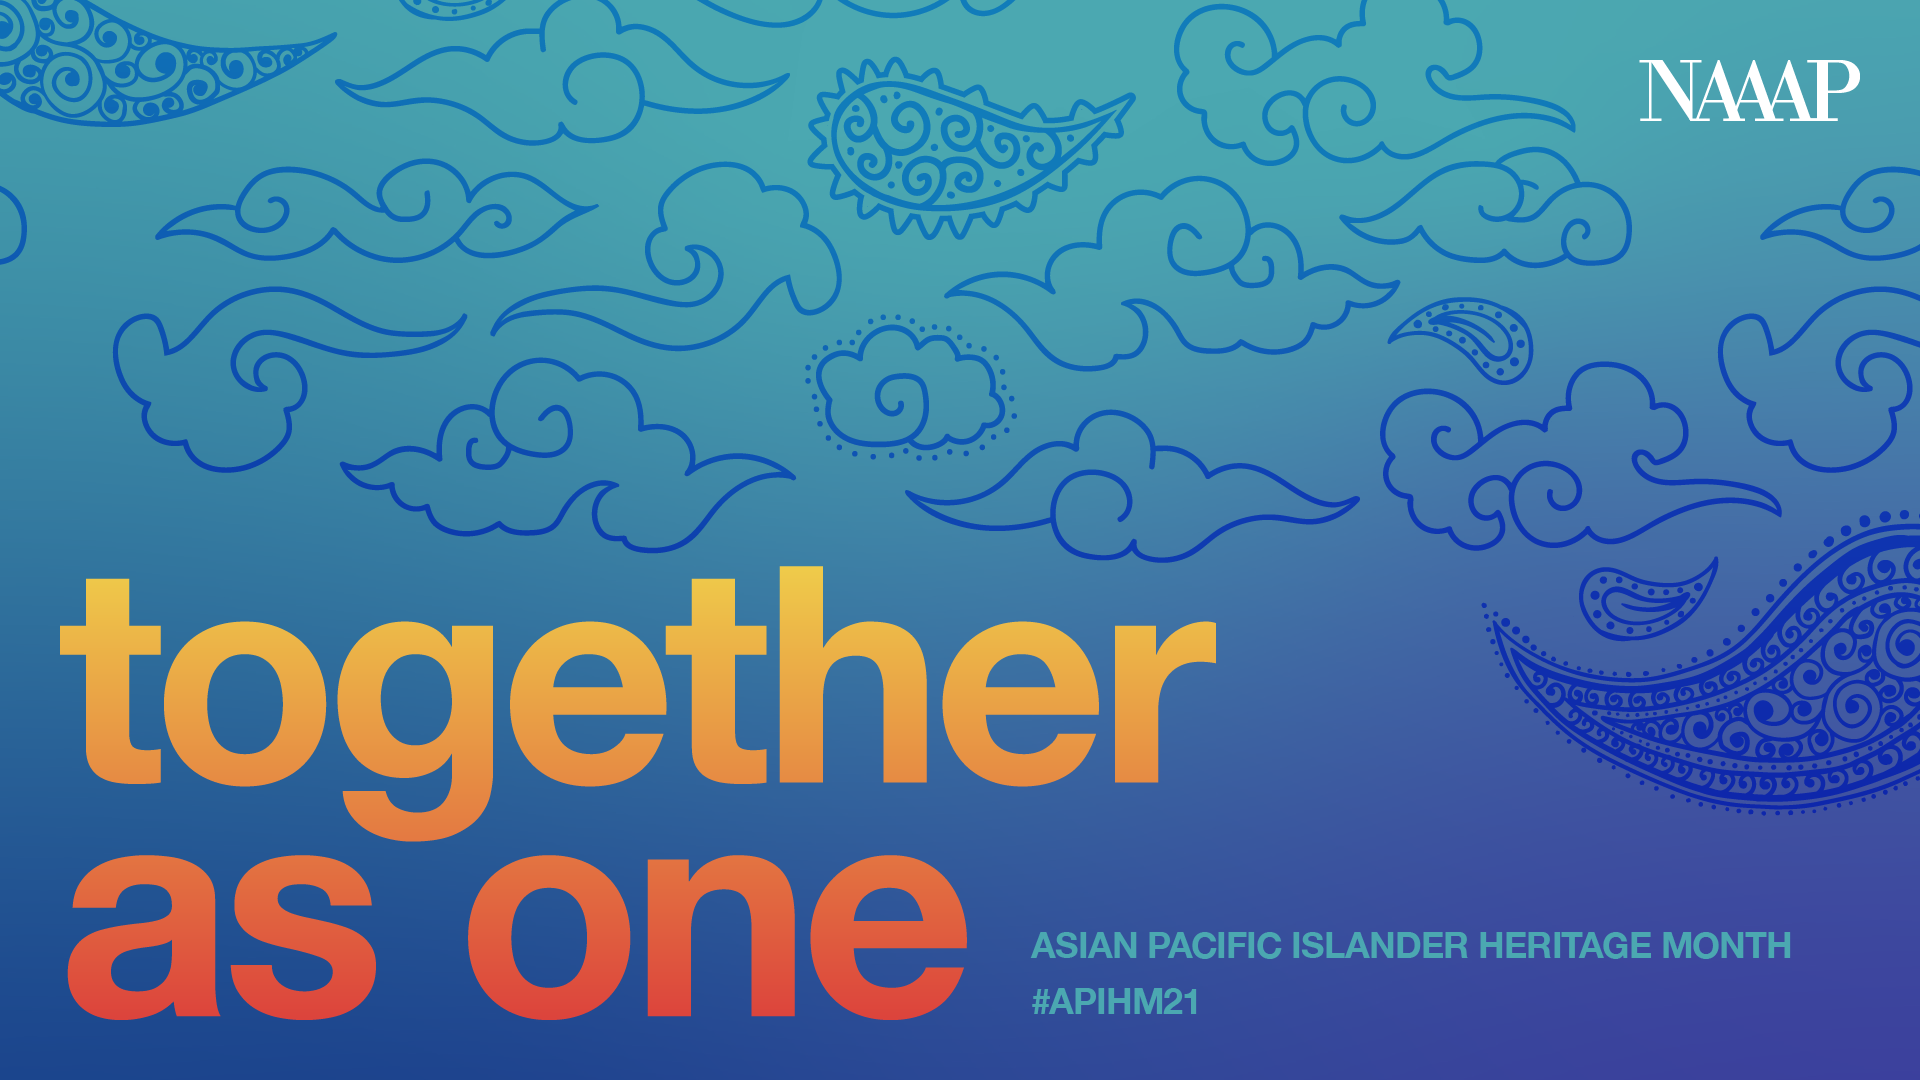 Asian Pacific Islander Heritage Month Graphics for Mobile